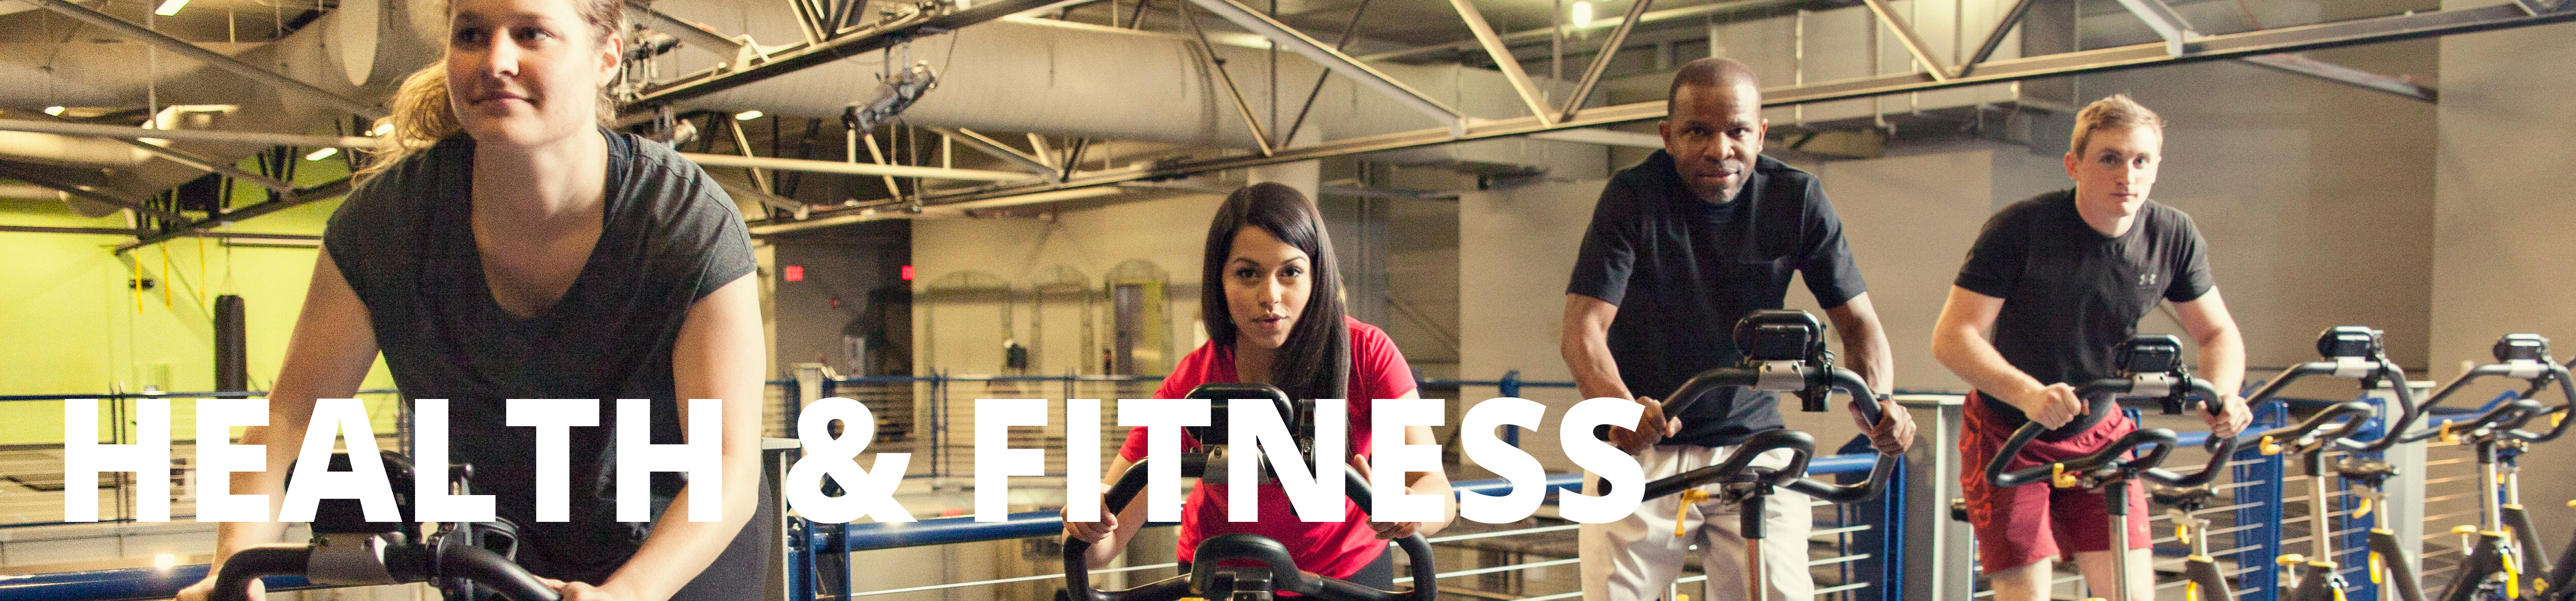 DOWNLOAD GROUP FITNESS SCHEDULE